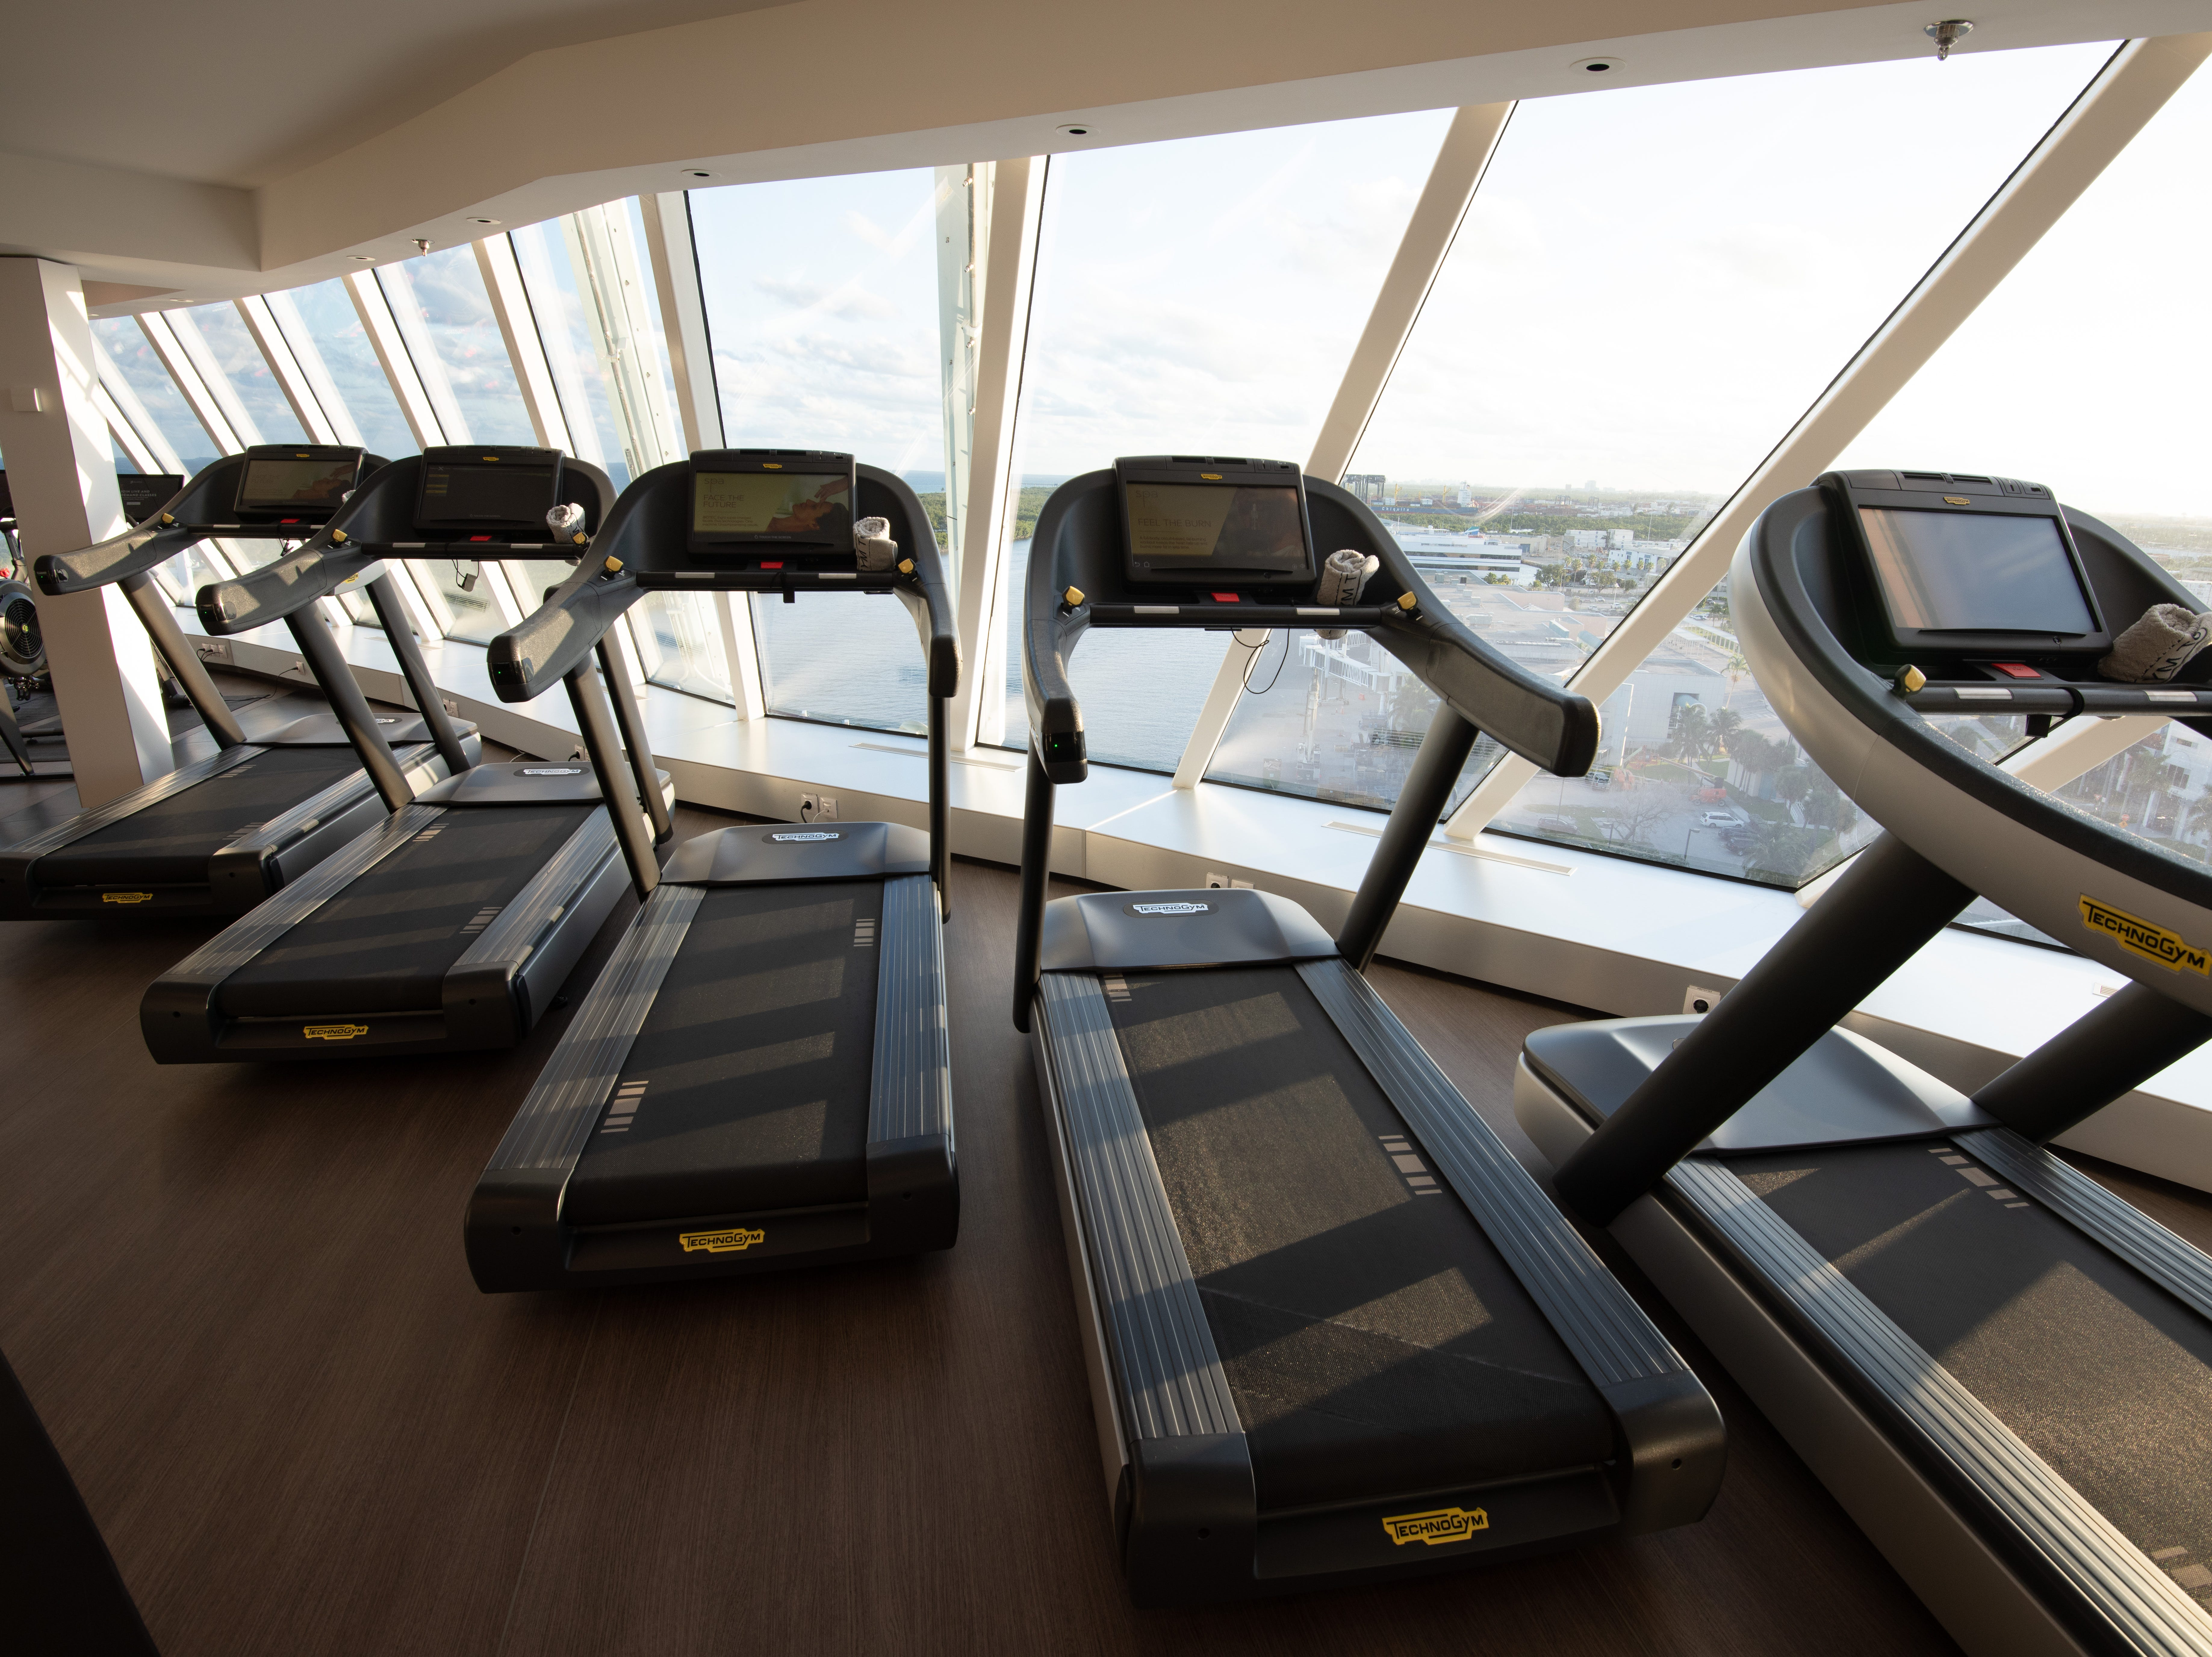 The Fitness Center on Celebrity Edge offers a wide range of cardio machines, Technogym weight machines and free weights.